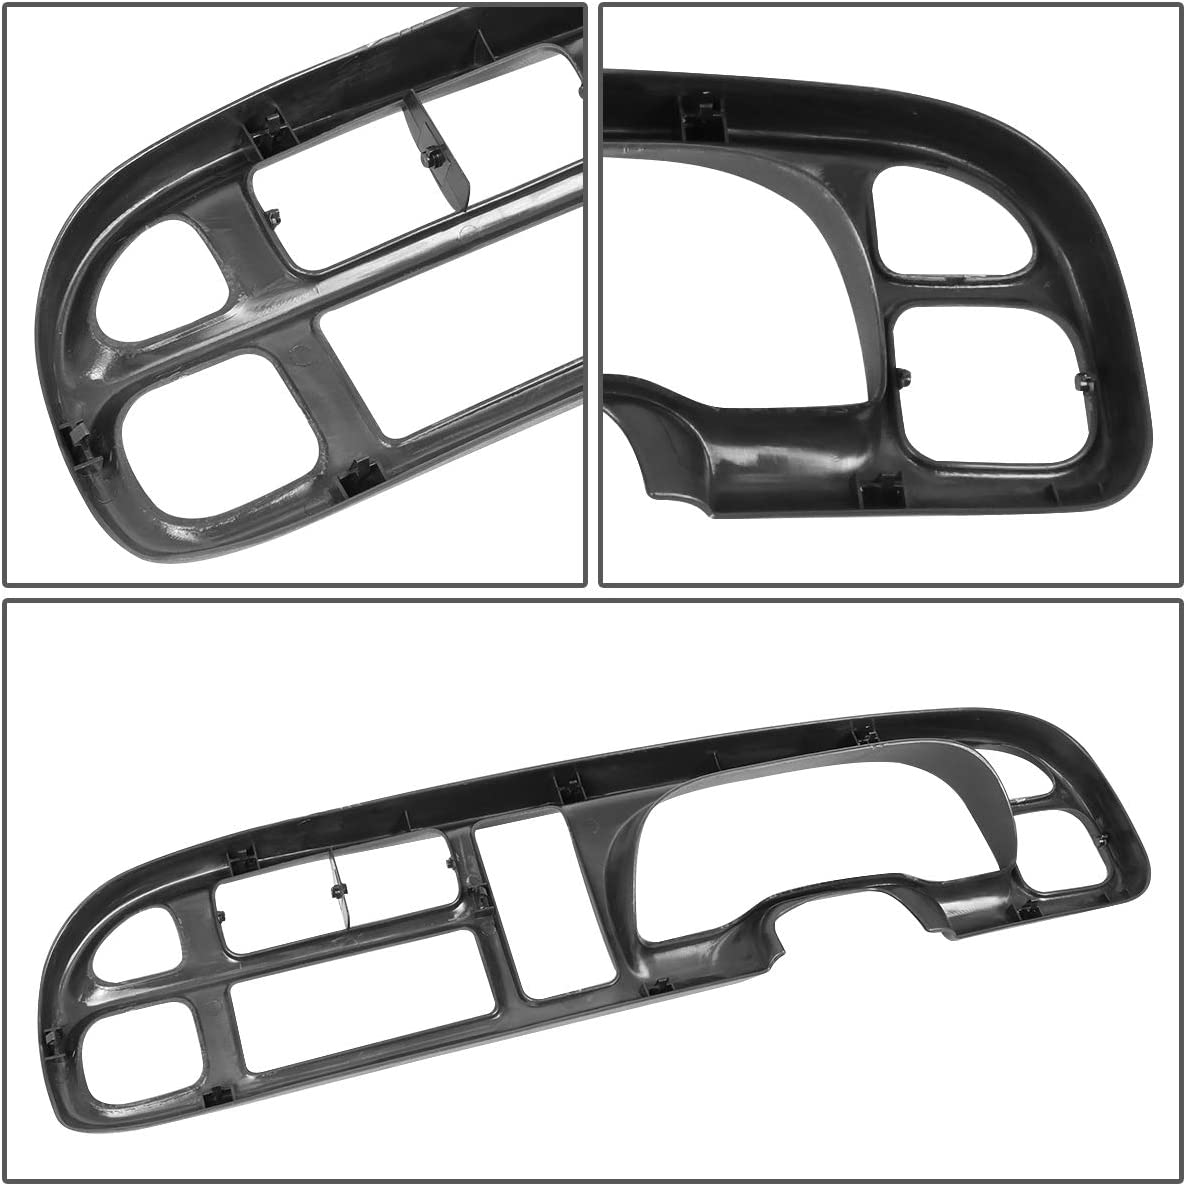 Dashboard Cover Cap Overlay Instrument Bezel for Dodge Ram Truck 1500 2500 3500 98-02